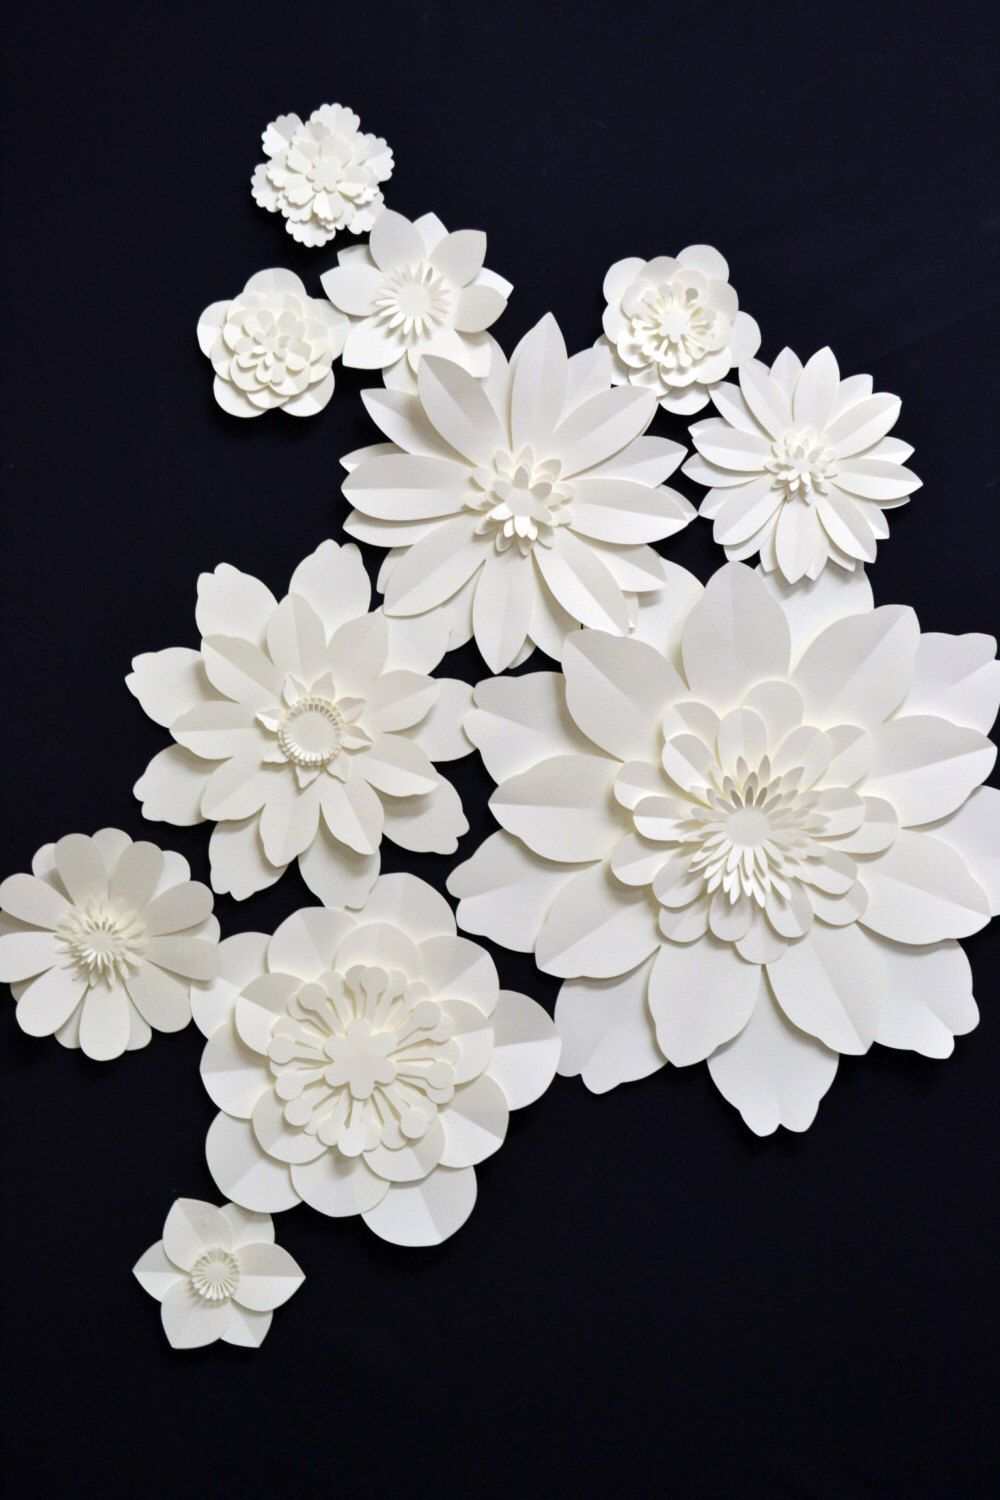 set of paper flowers for wedding decorationcomeuppance